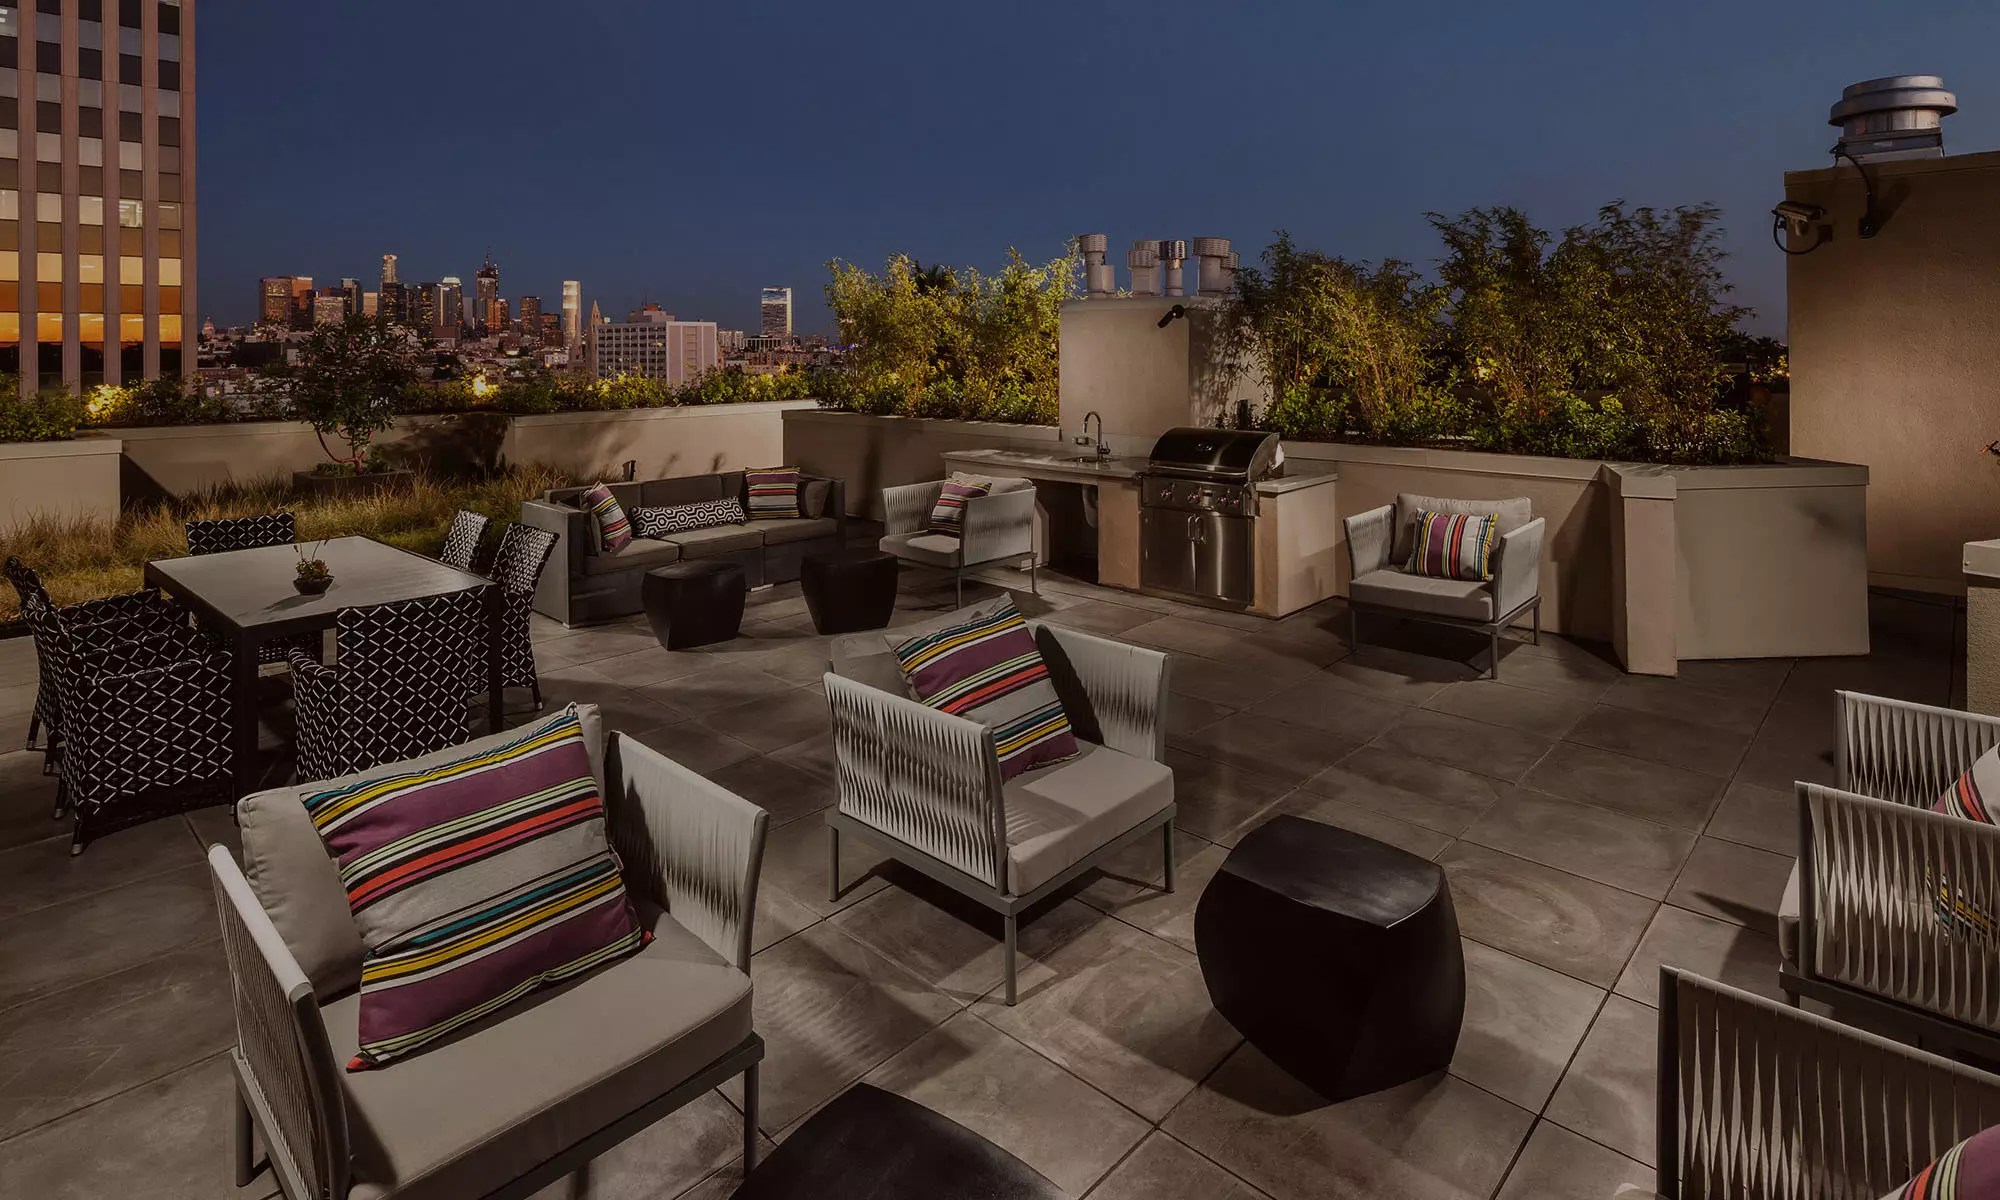 Elegant Koreatown Los Ca Apartments Near Downtown Berkshire Our Pampered Home Amazon Our Pampered Home Coupon Code houzz-02 Our Pampered Home